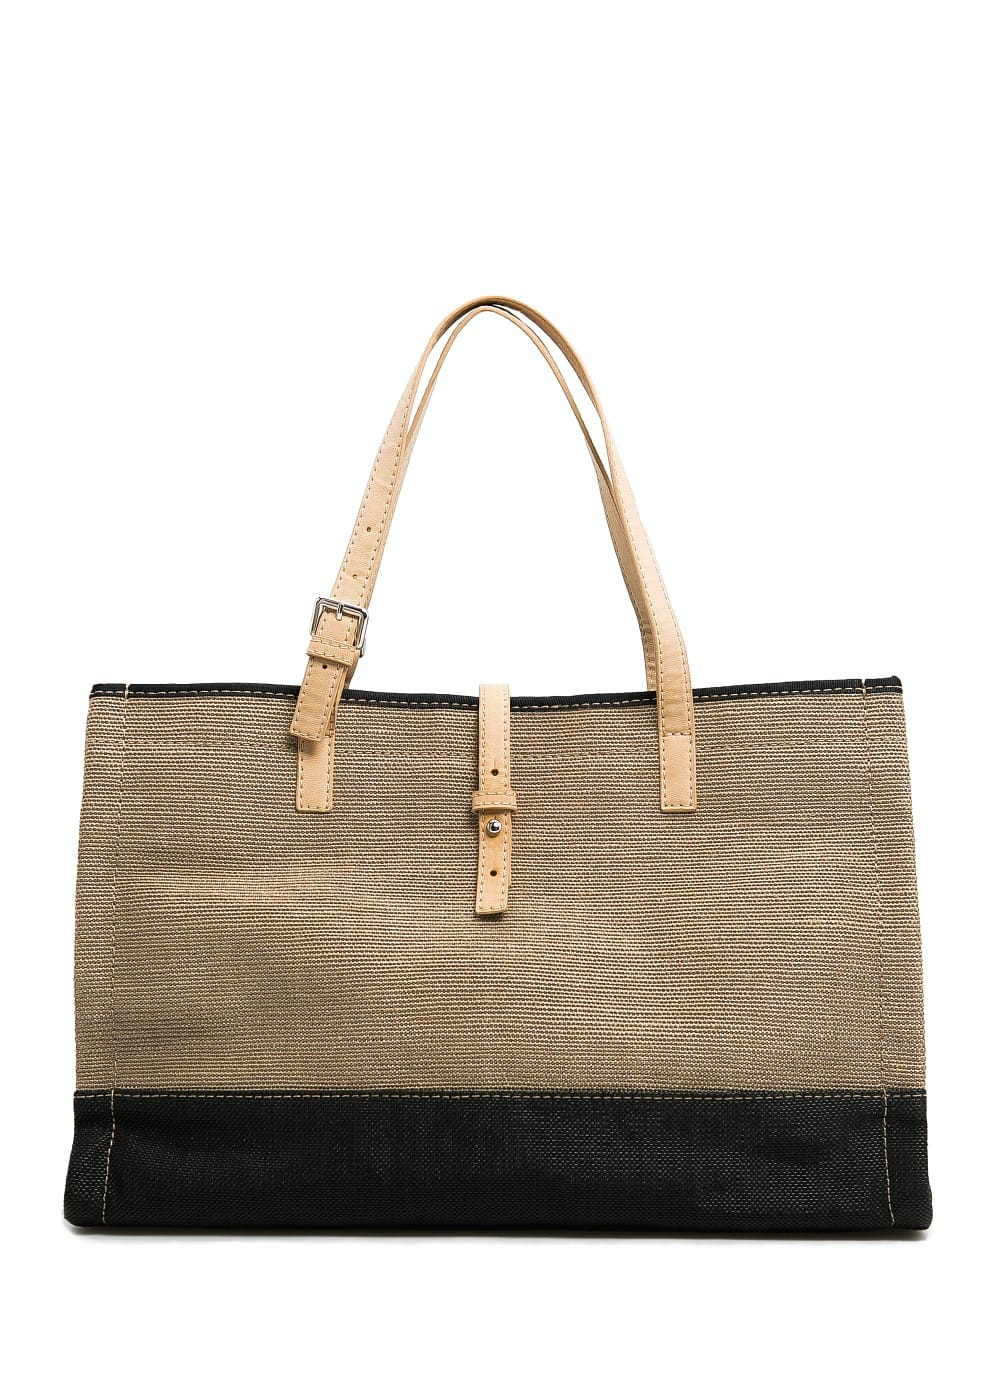 Two-tone raffia shopper bag